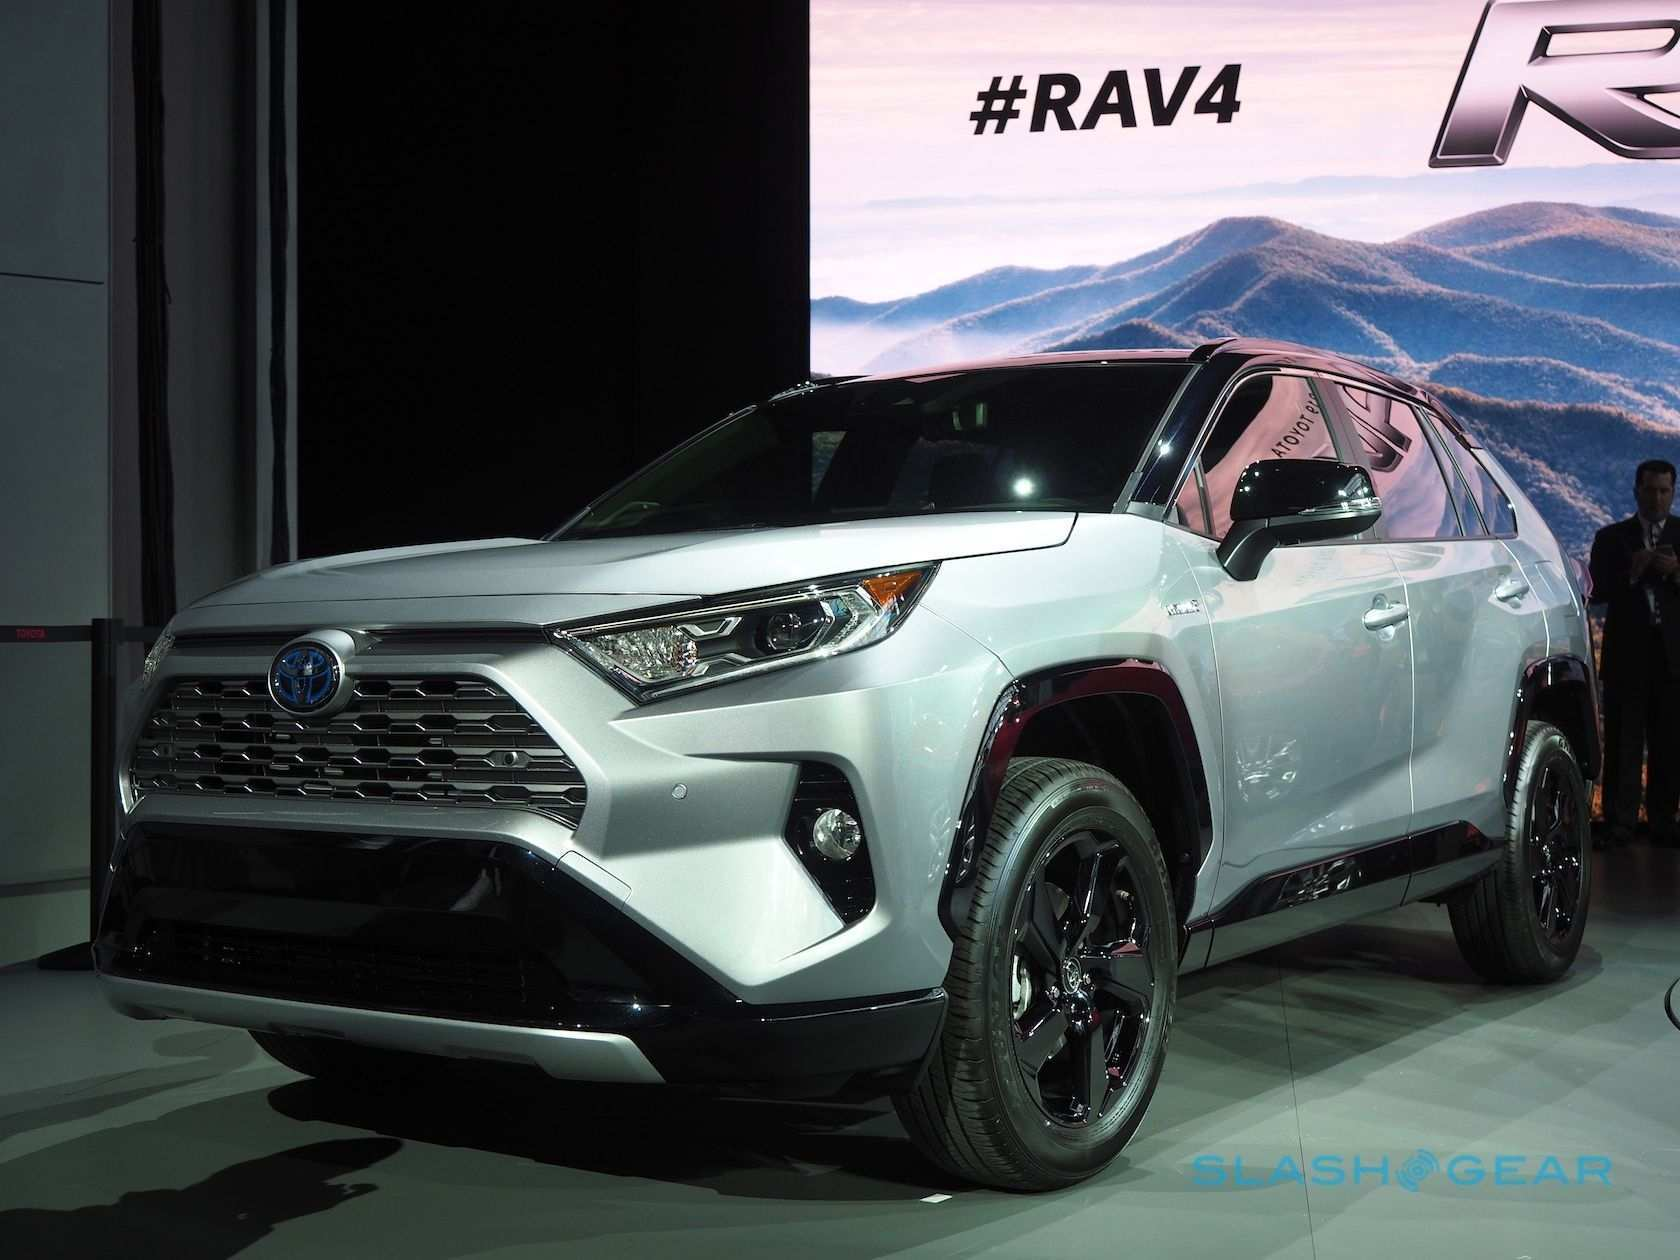 87 Gallery of The New Toyota 2019 Models Review Specs And Release Date Configurations for The New Toyota 2019 Models Review Specs And Release Date